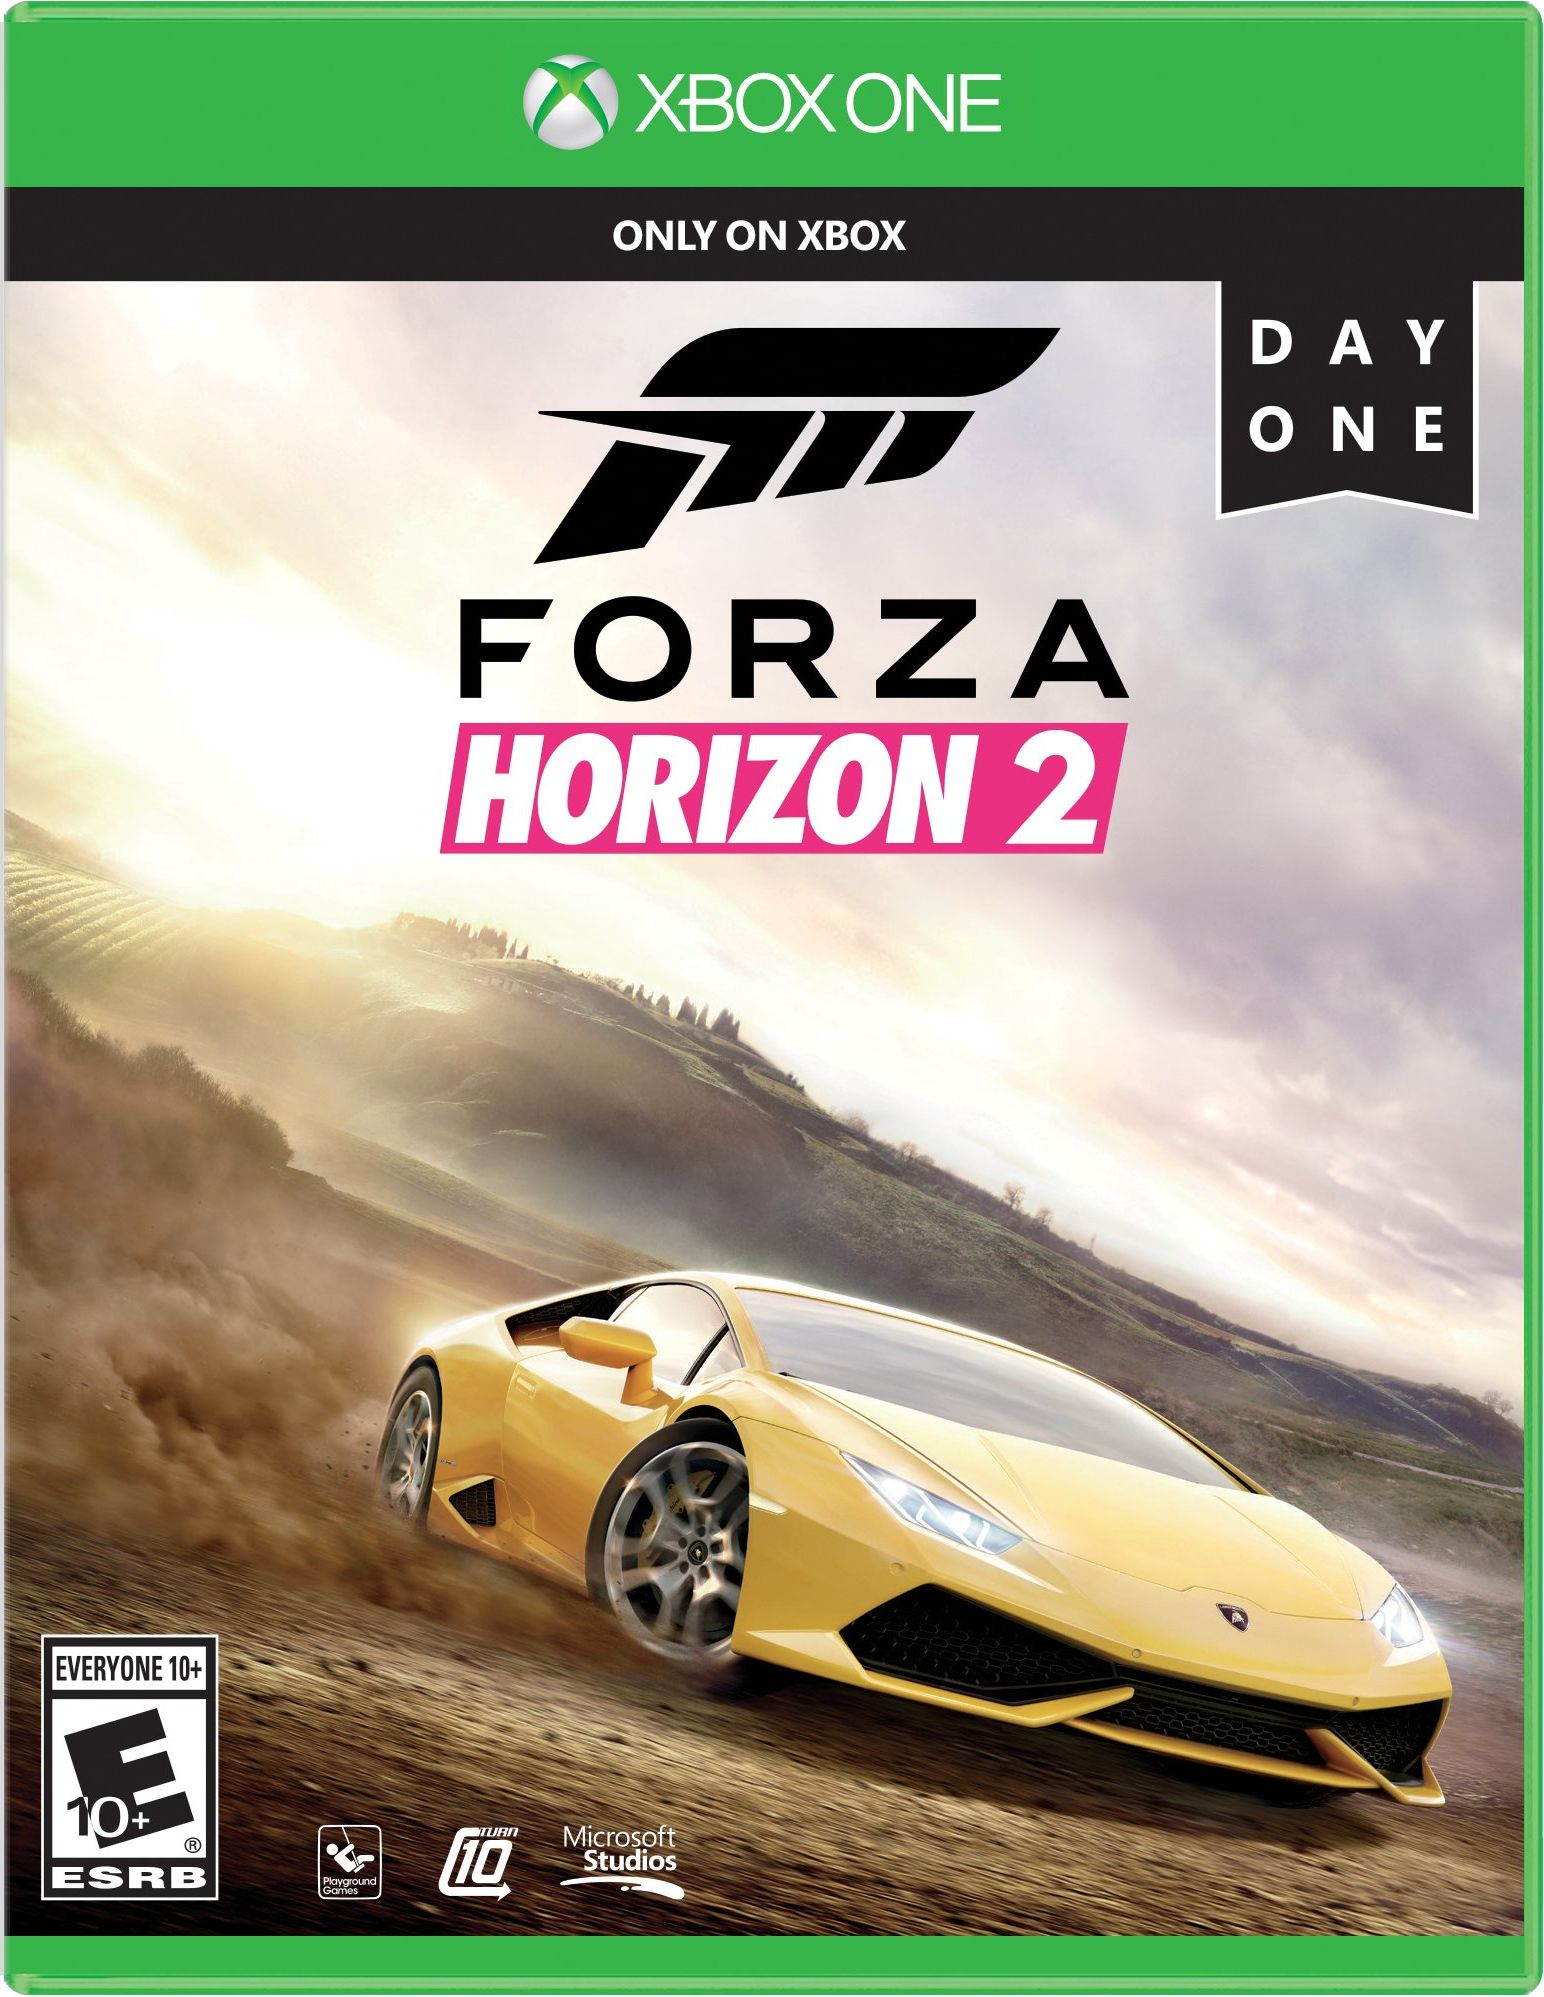 forza horizon 2 release date xbox 360 xbox one. Black Bedroom Furniture Sets. Home Design Ideas